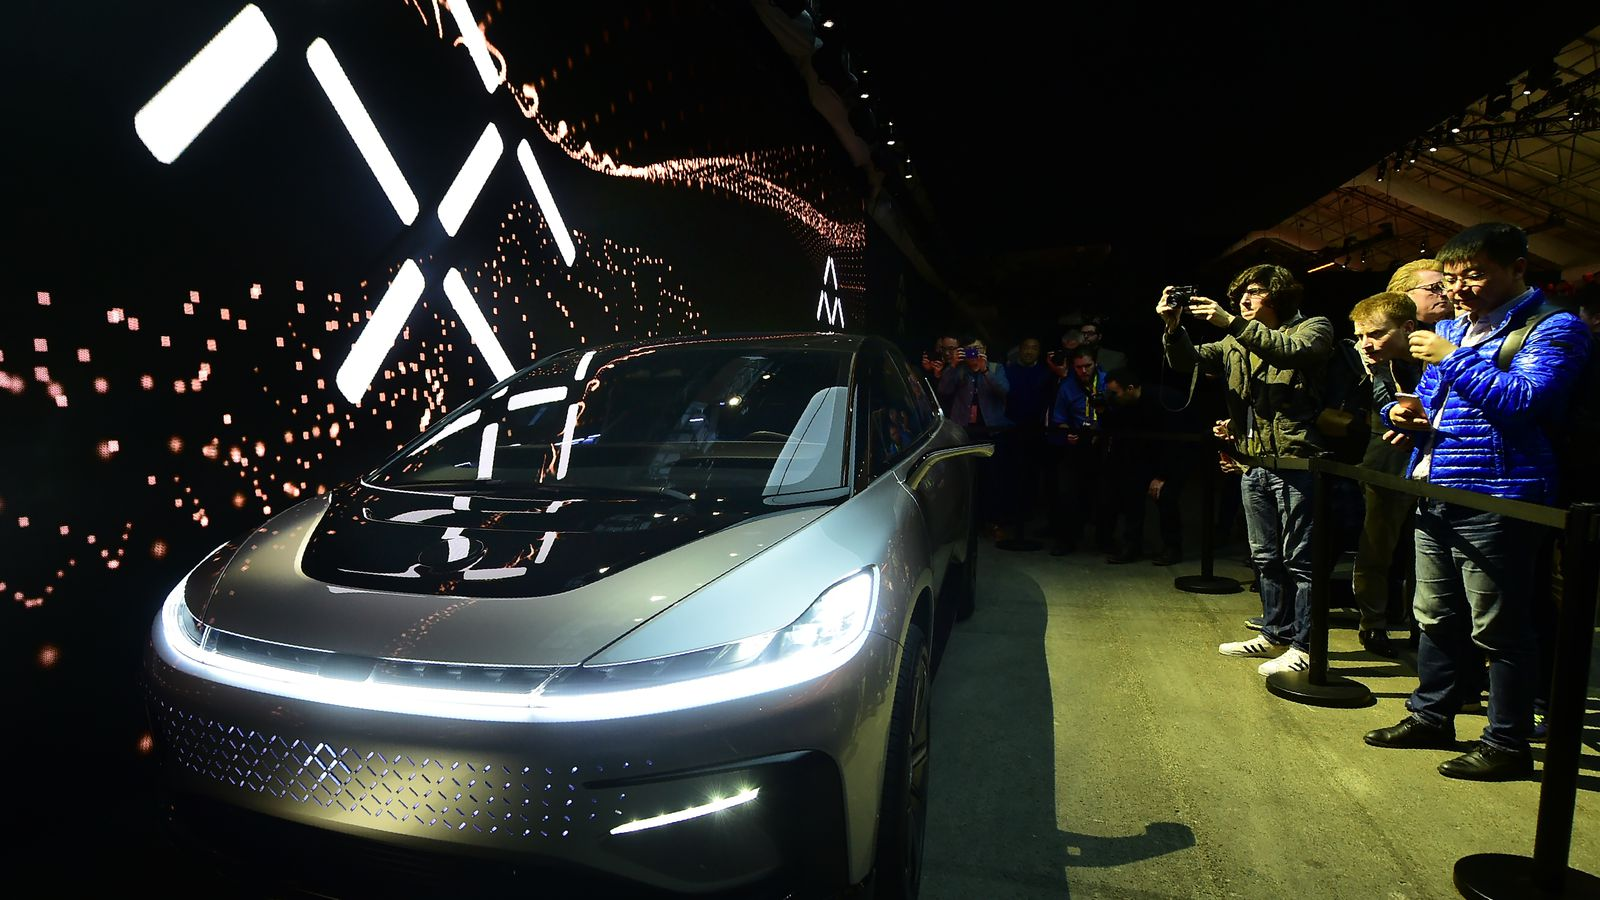 CES 2017: We're Liveblogging all the News and Updates from Las Vegas